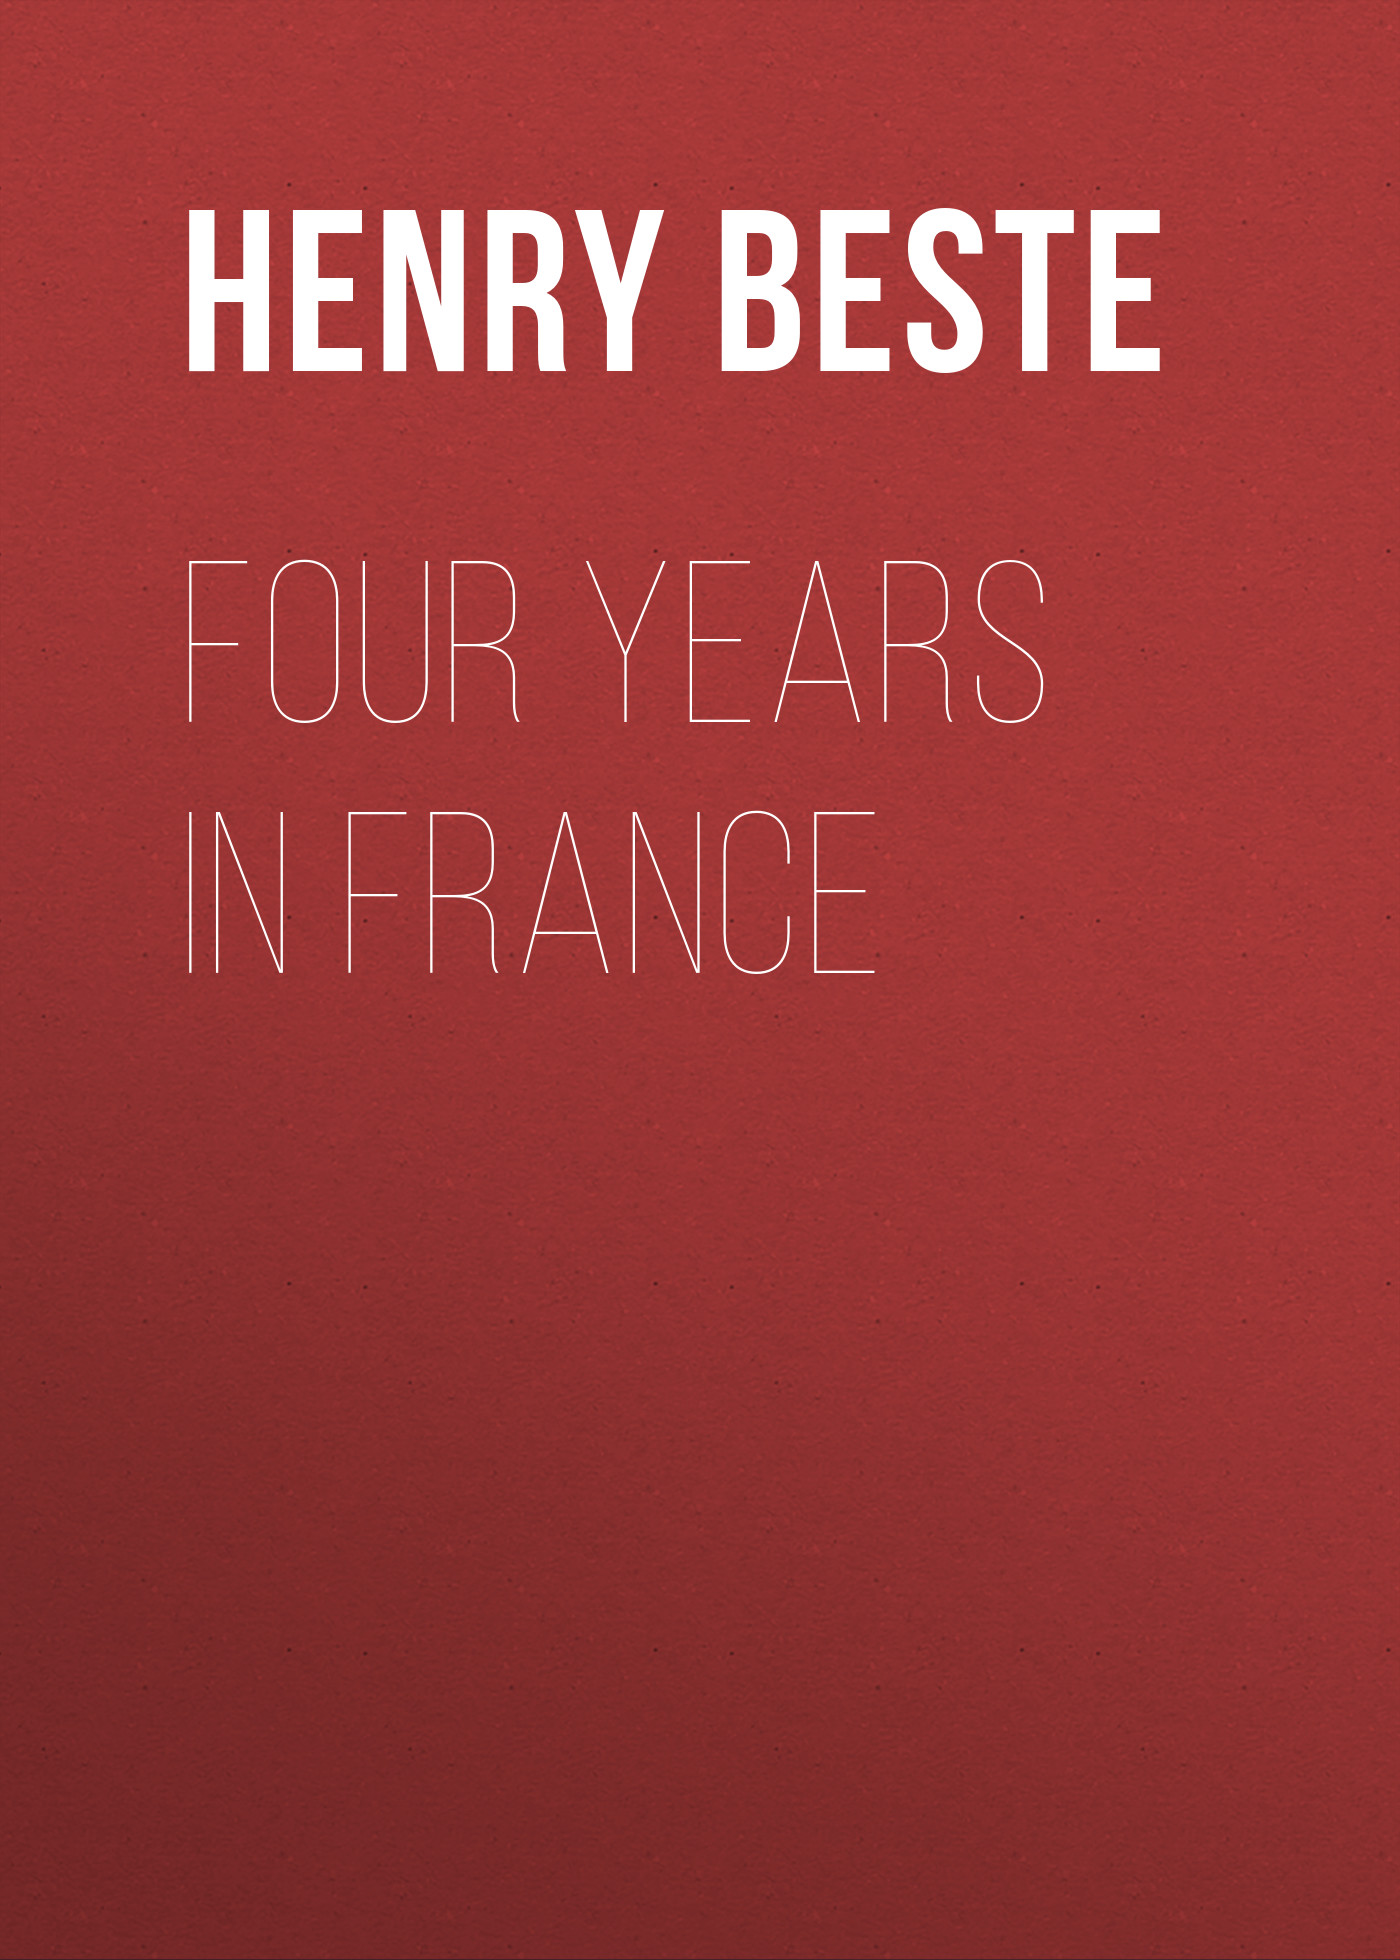 Beste Henry Digby Four Years in France